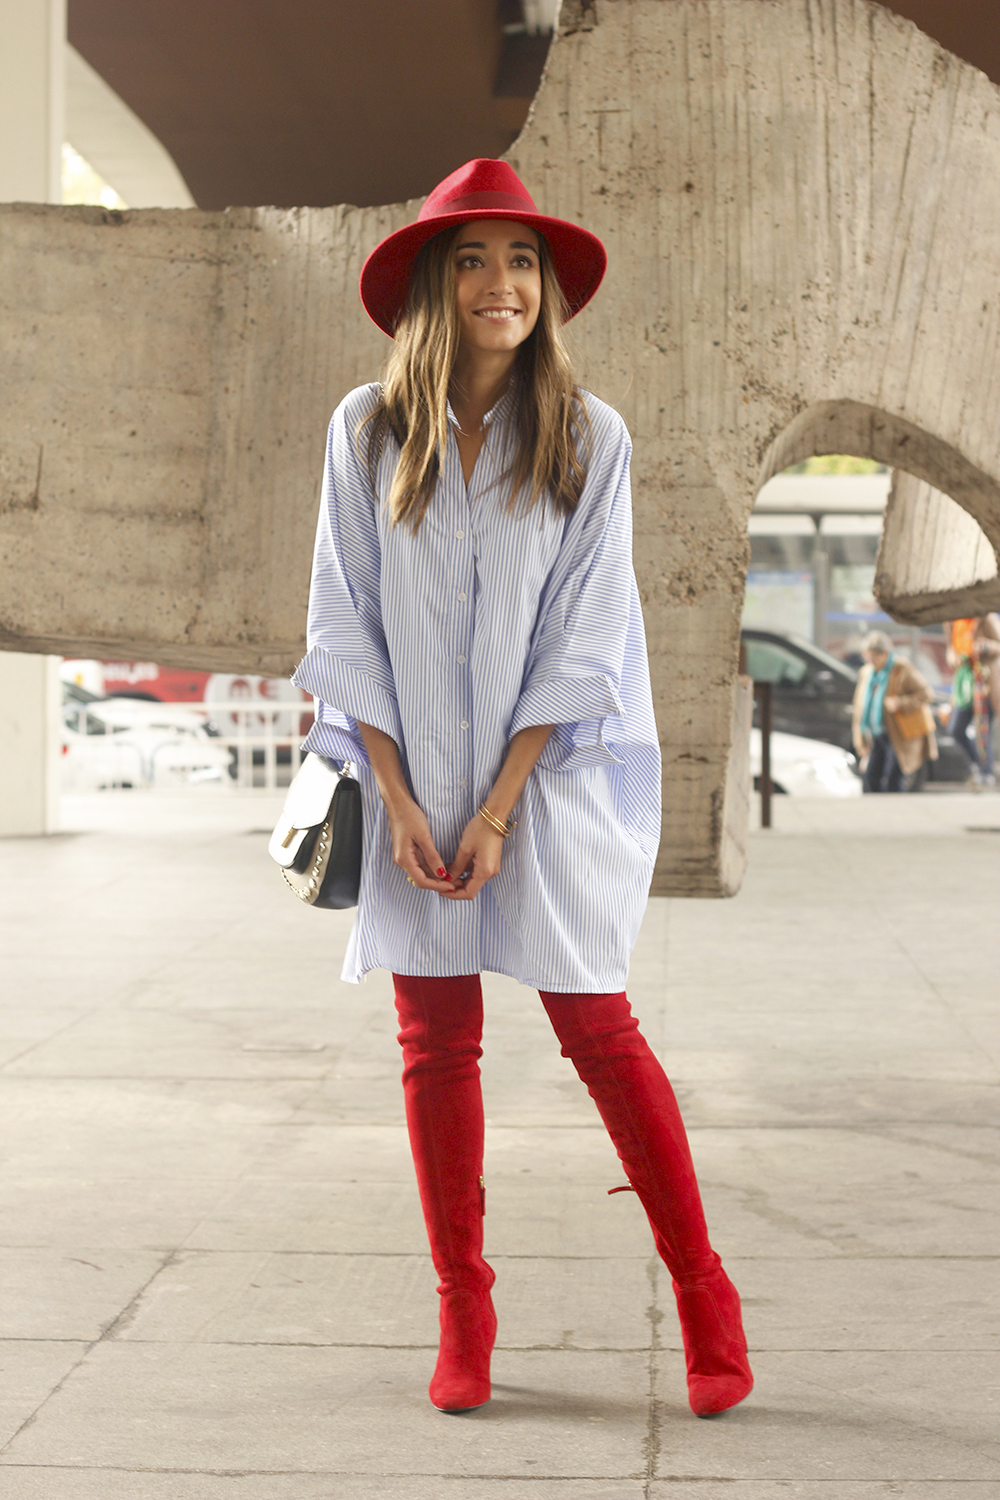 striped dress red over the knee boots red hat accessories fashion outfit style autumn04